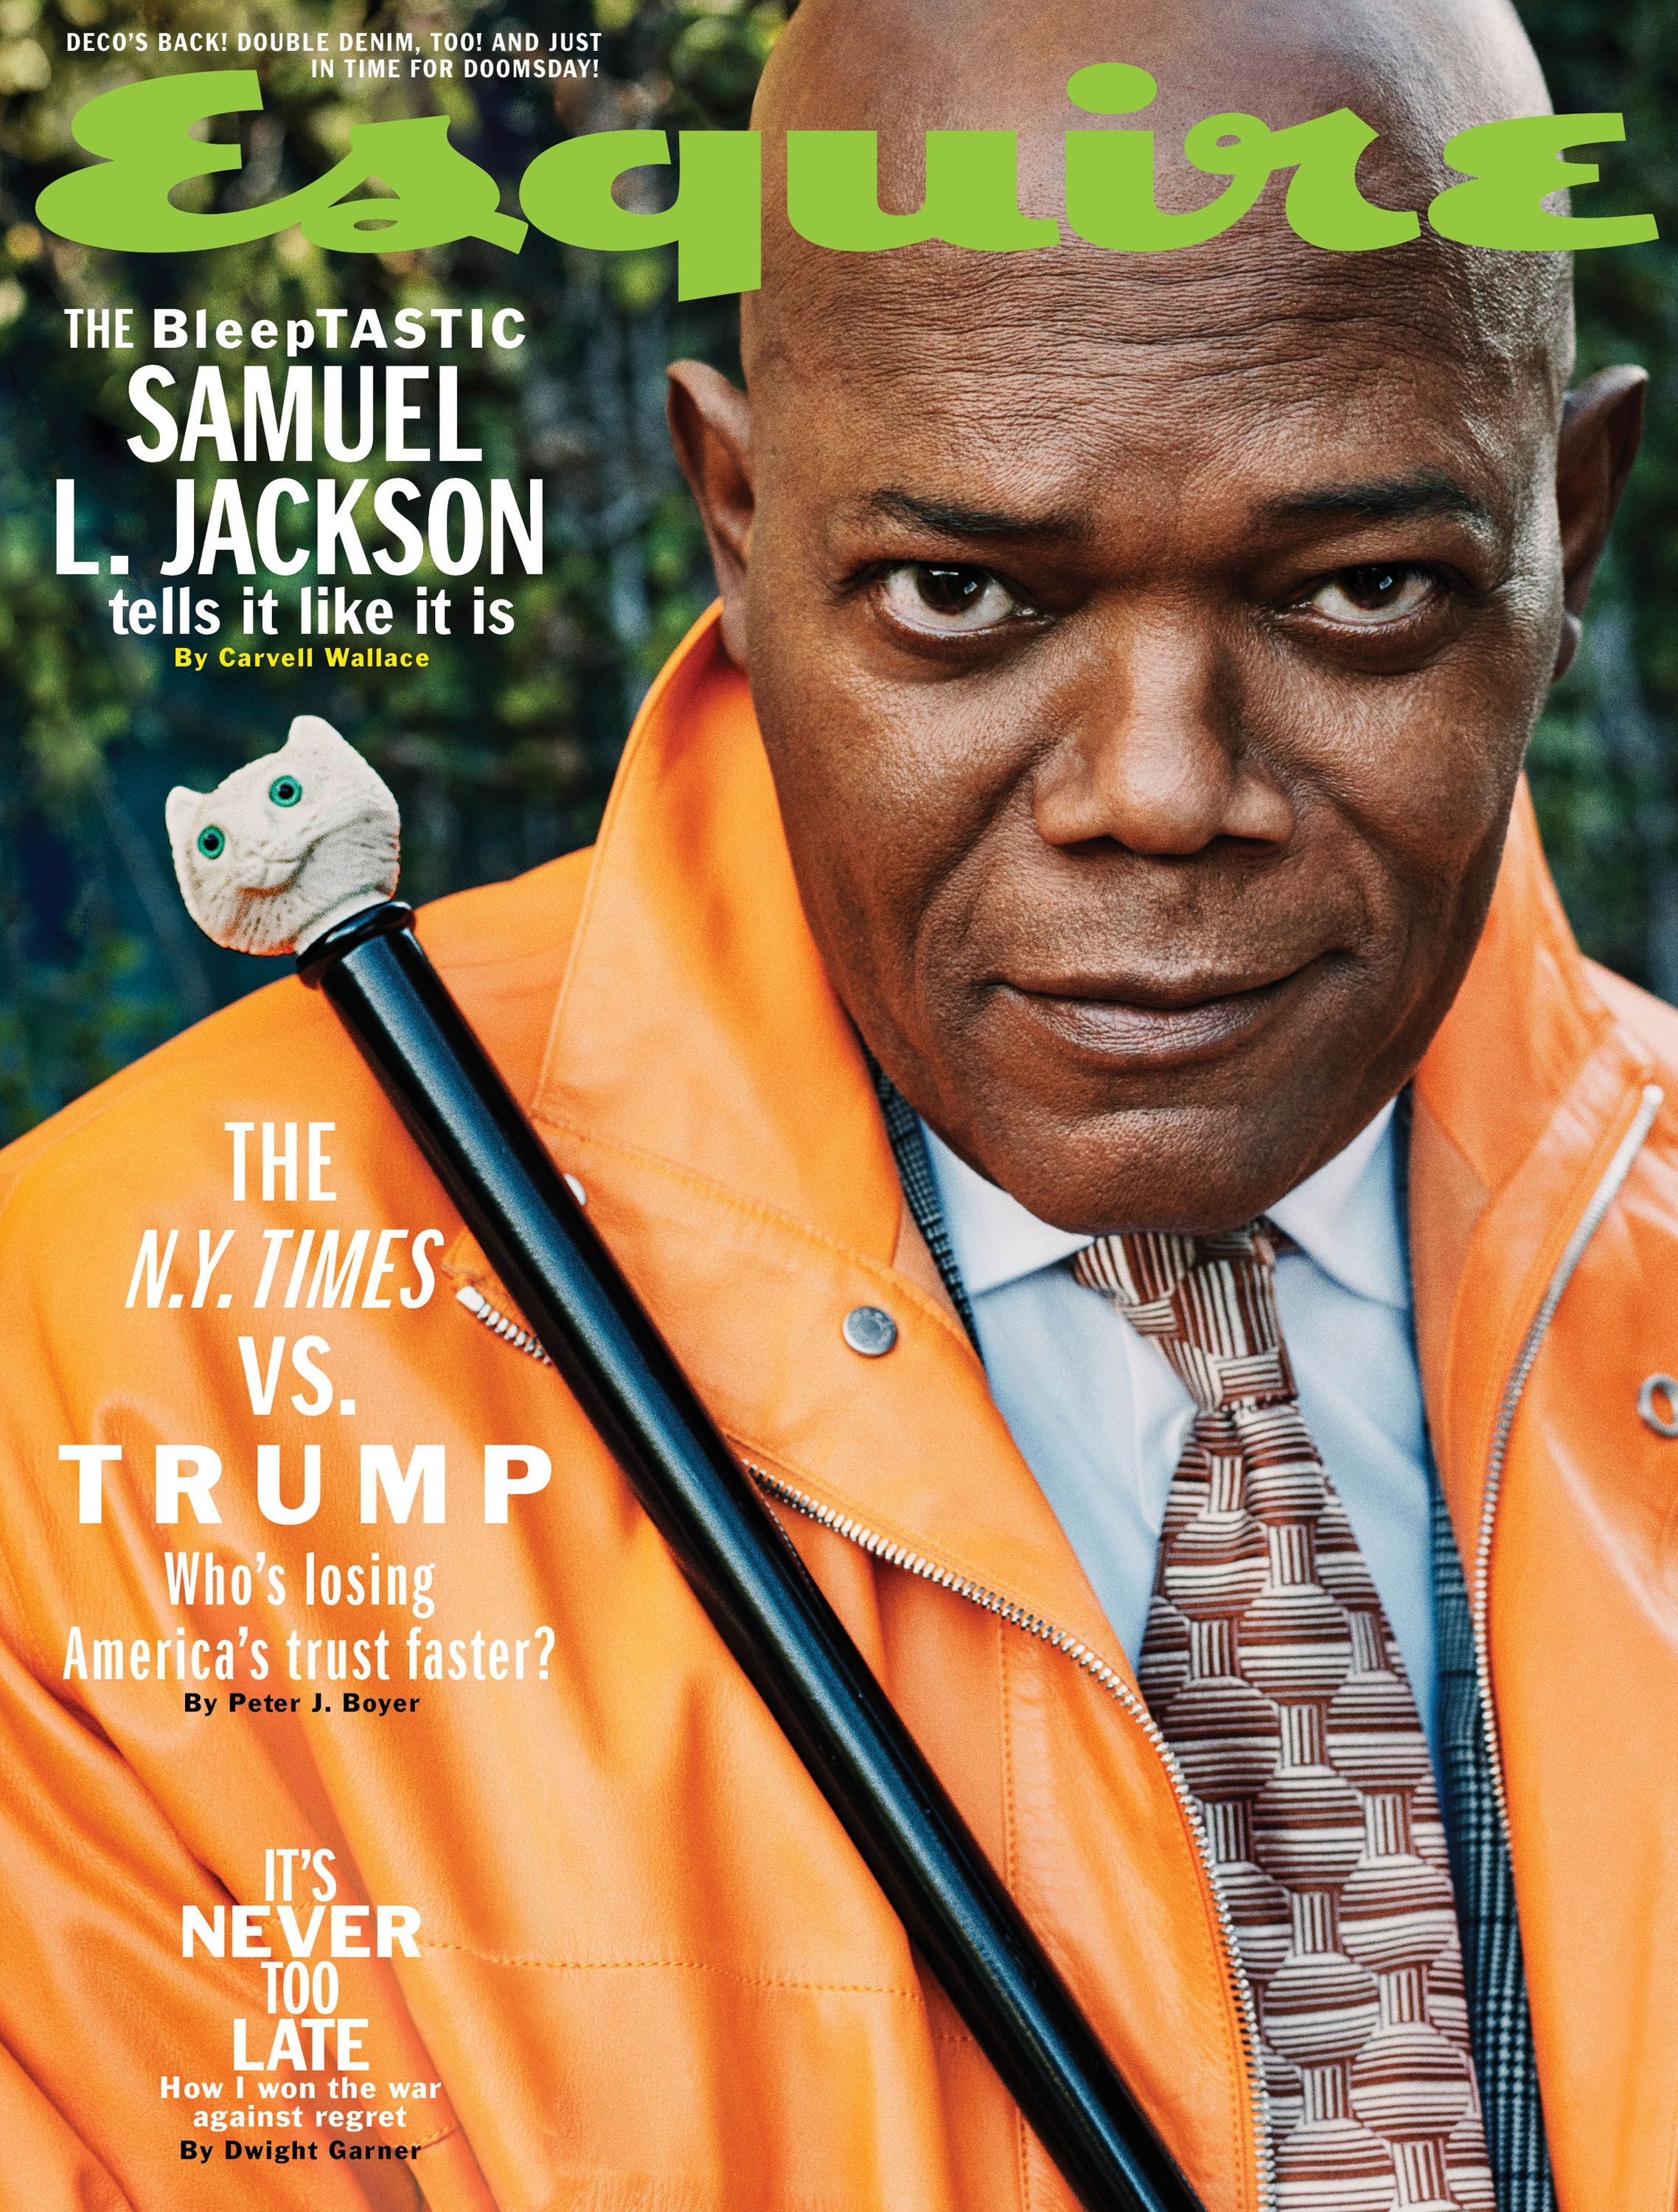 Samuel L. Jackson covers the April issue of Esquire.